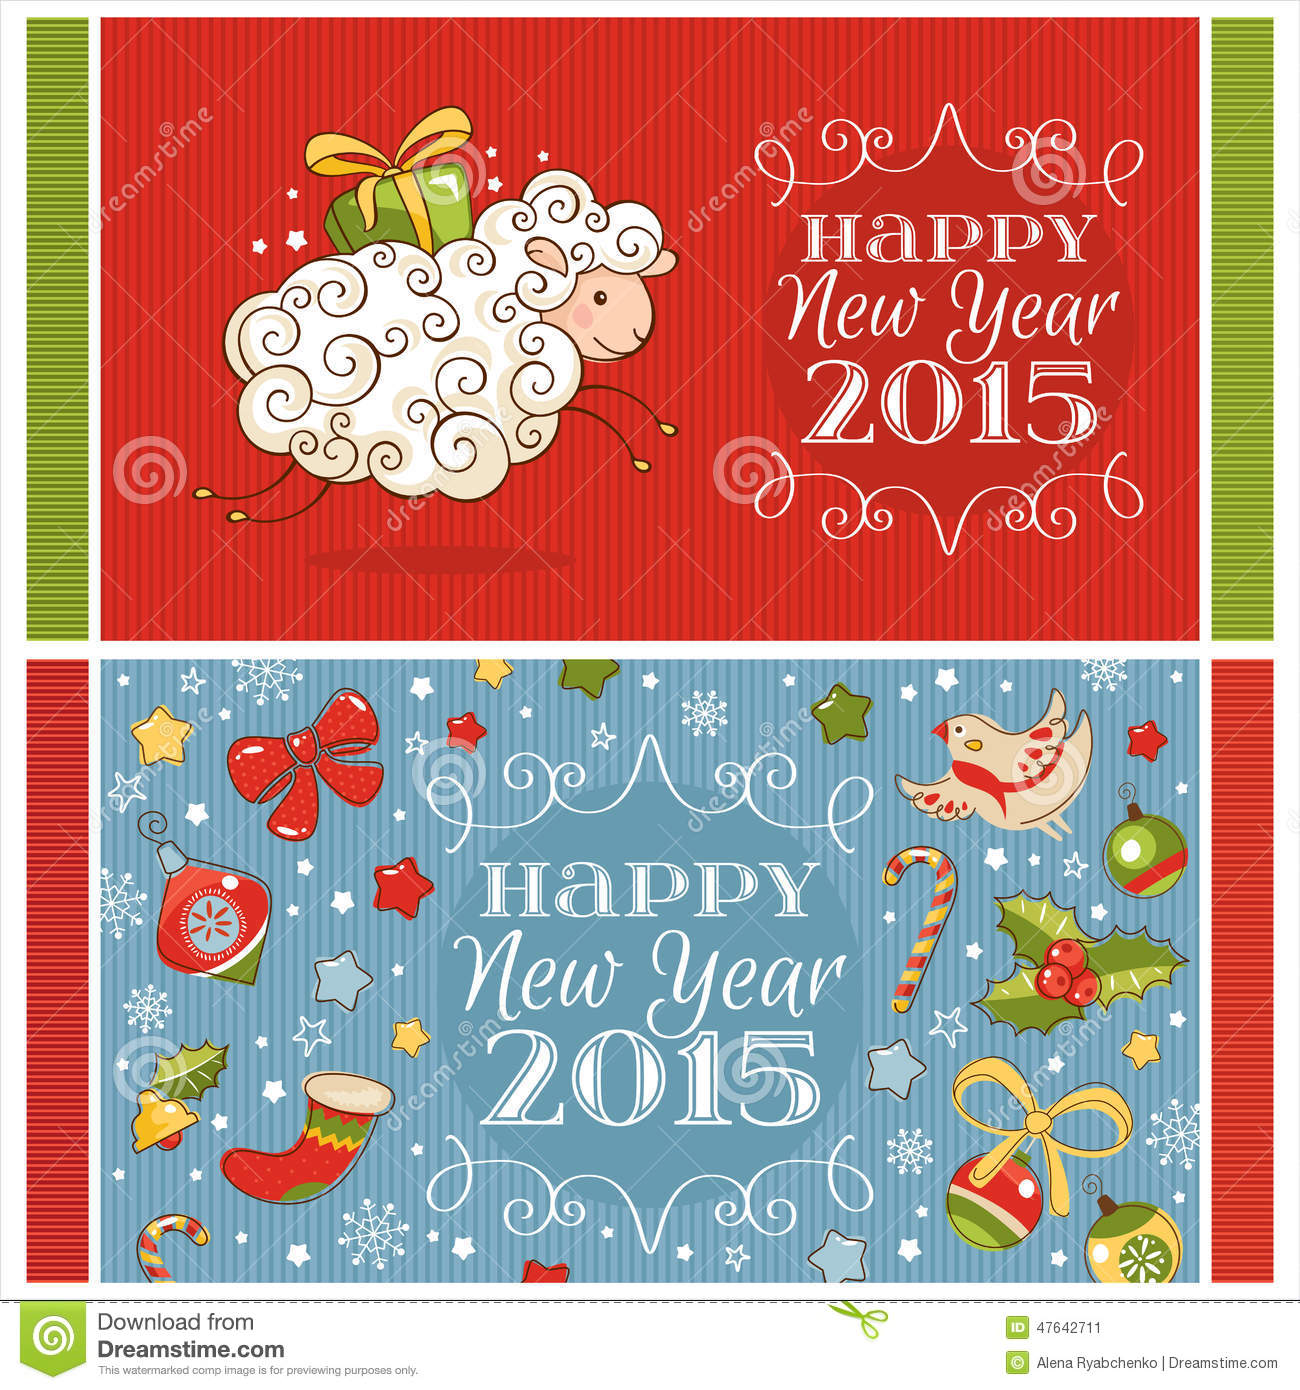 New year greeting cards stock vector illustration of ribbon 47642711 download new year greeting cards stock vector illustration of ribbon 47642711 m4hsunfo